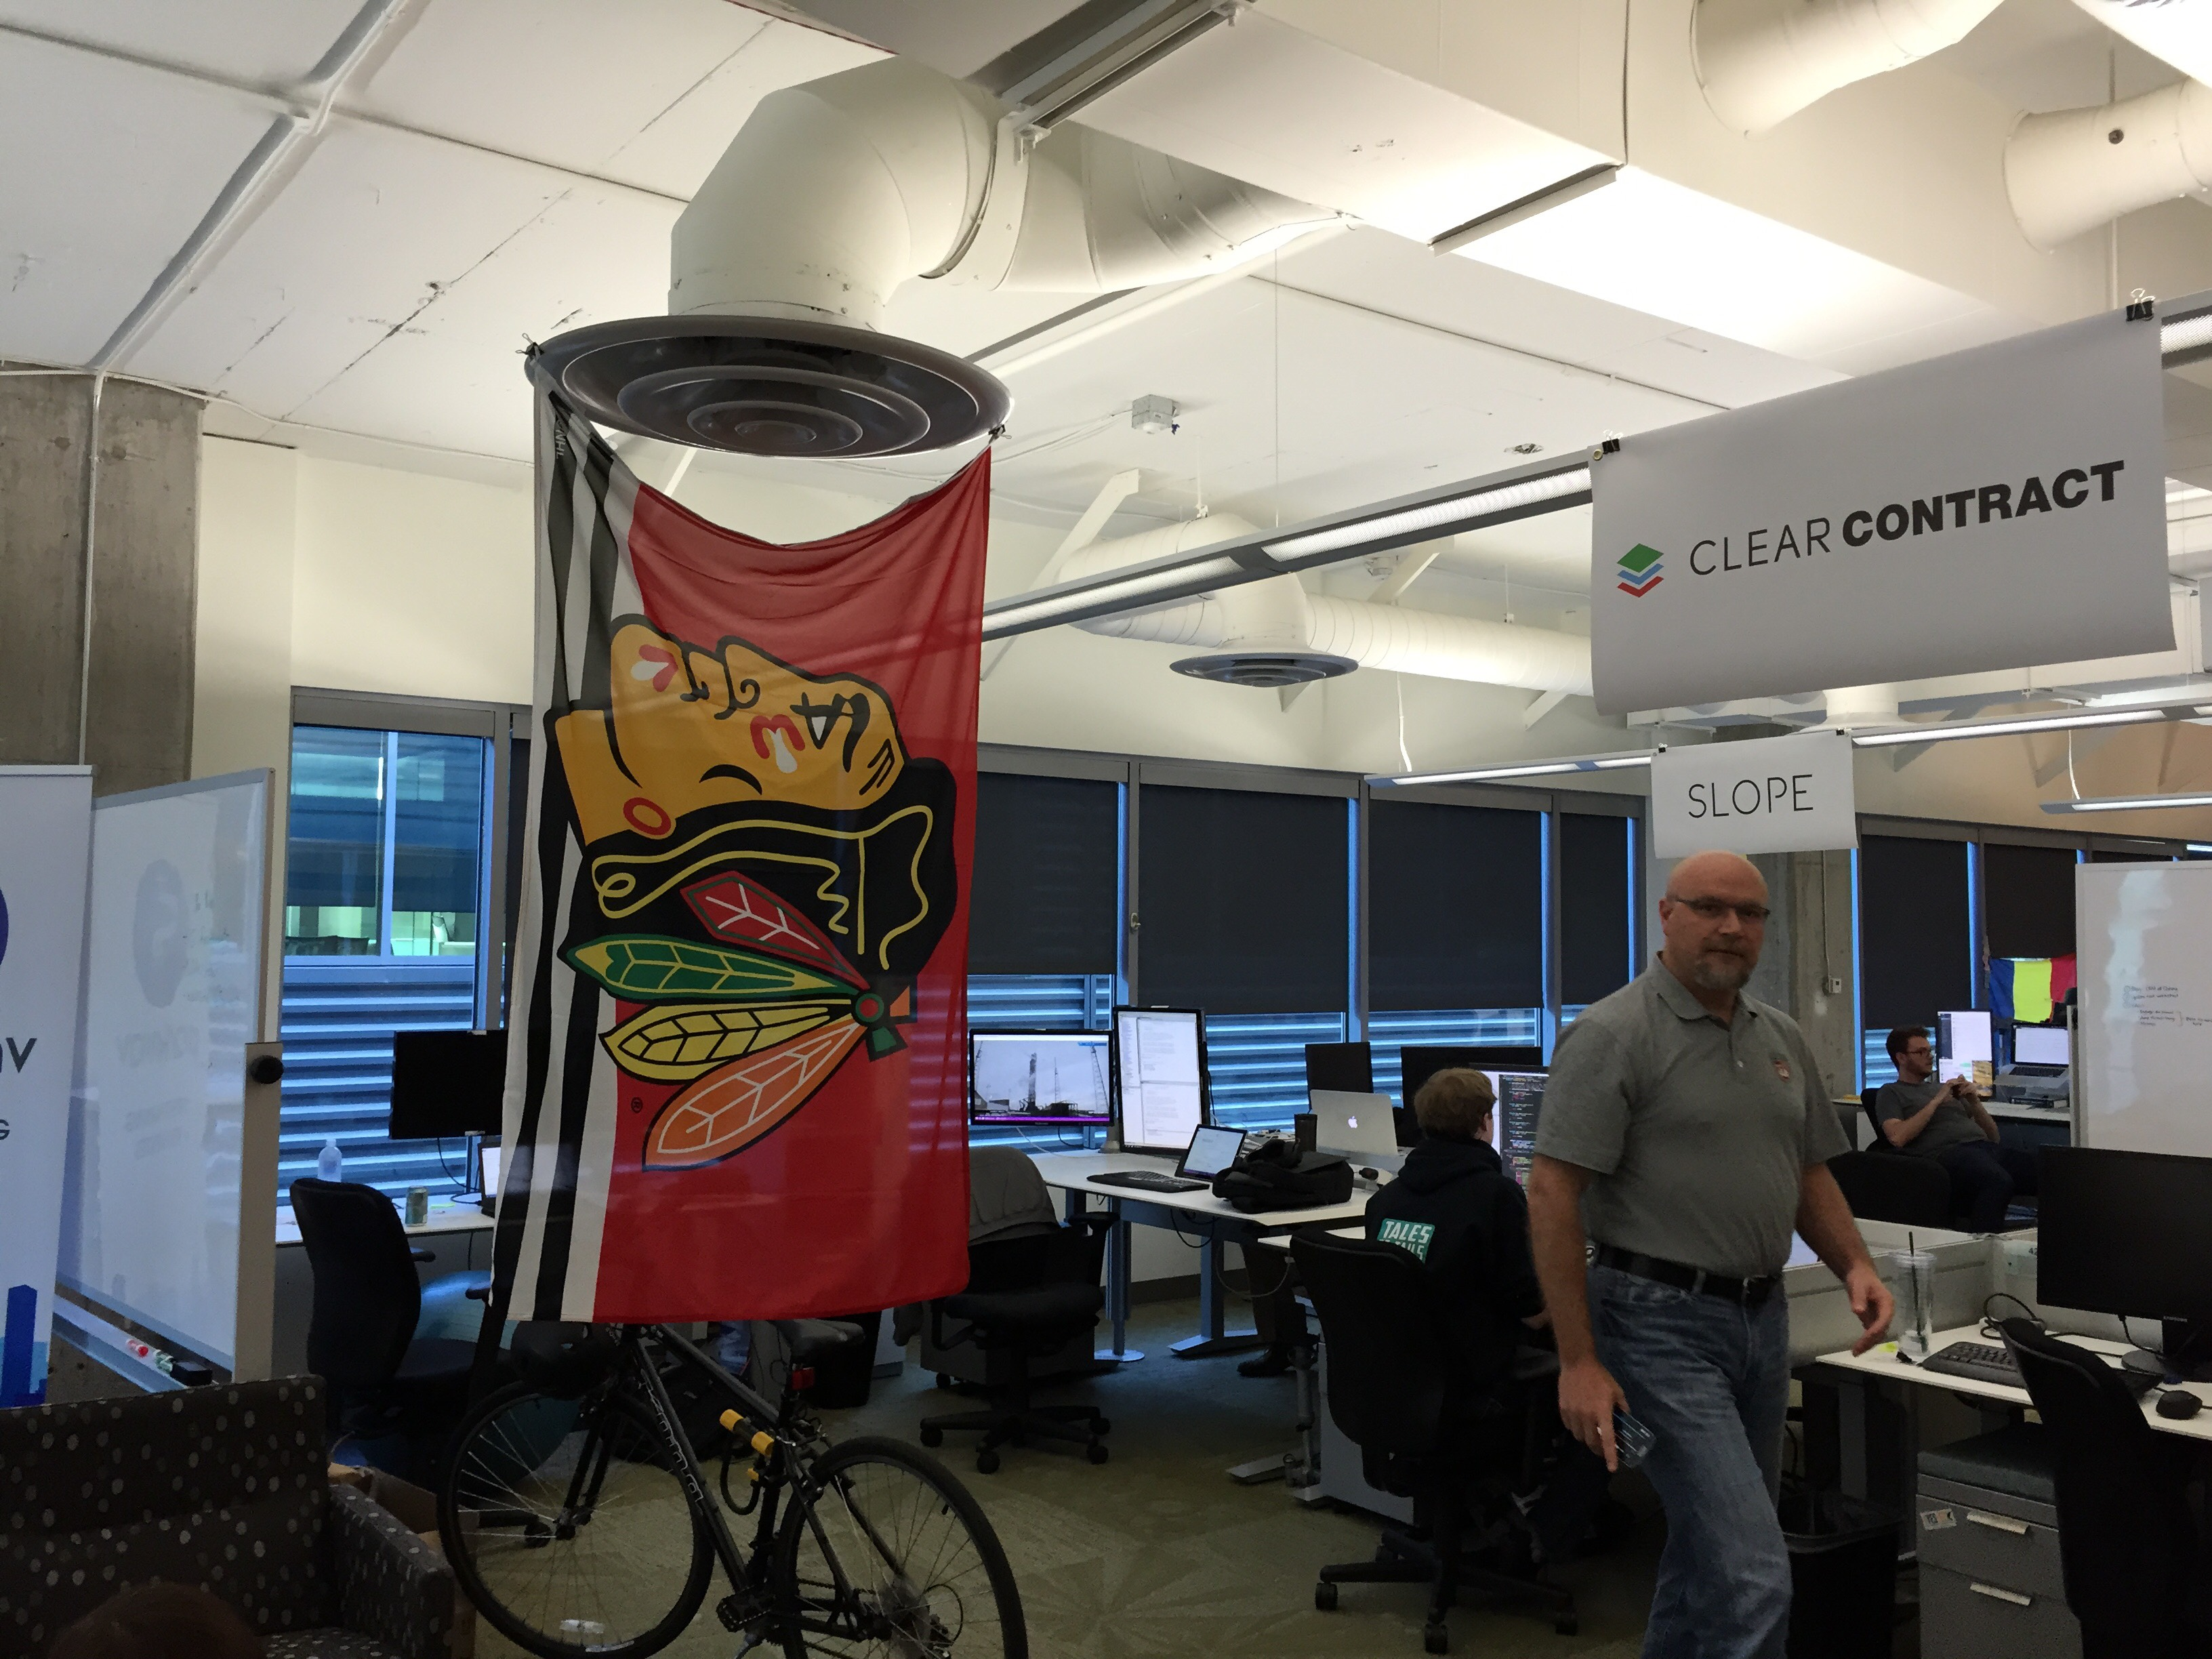 Kyle's workspace at Microsoft - Go Hawks!!